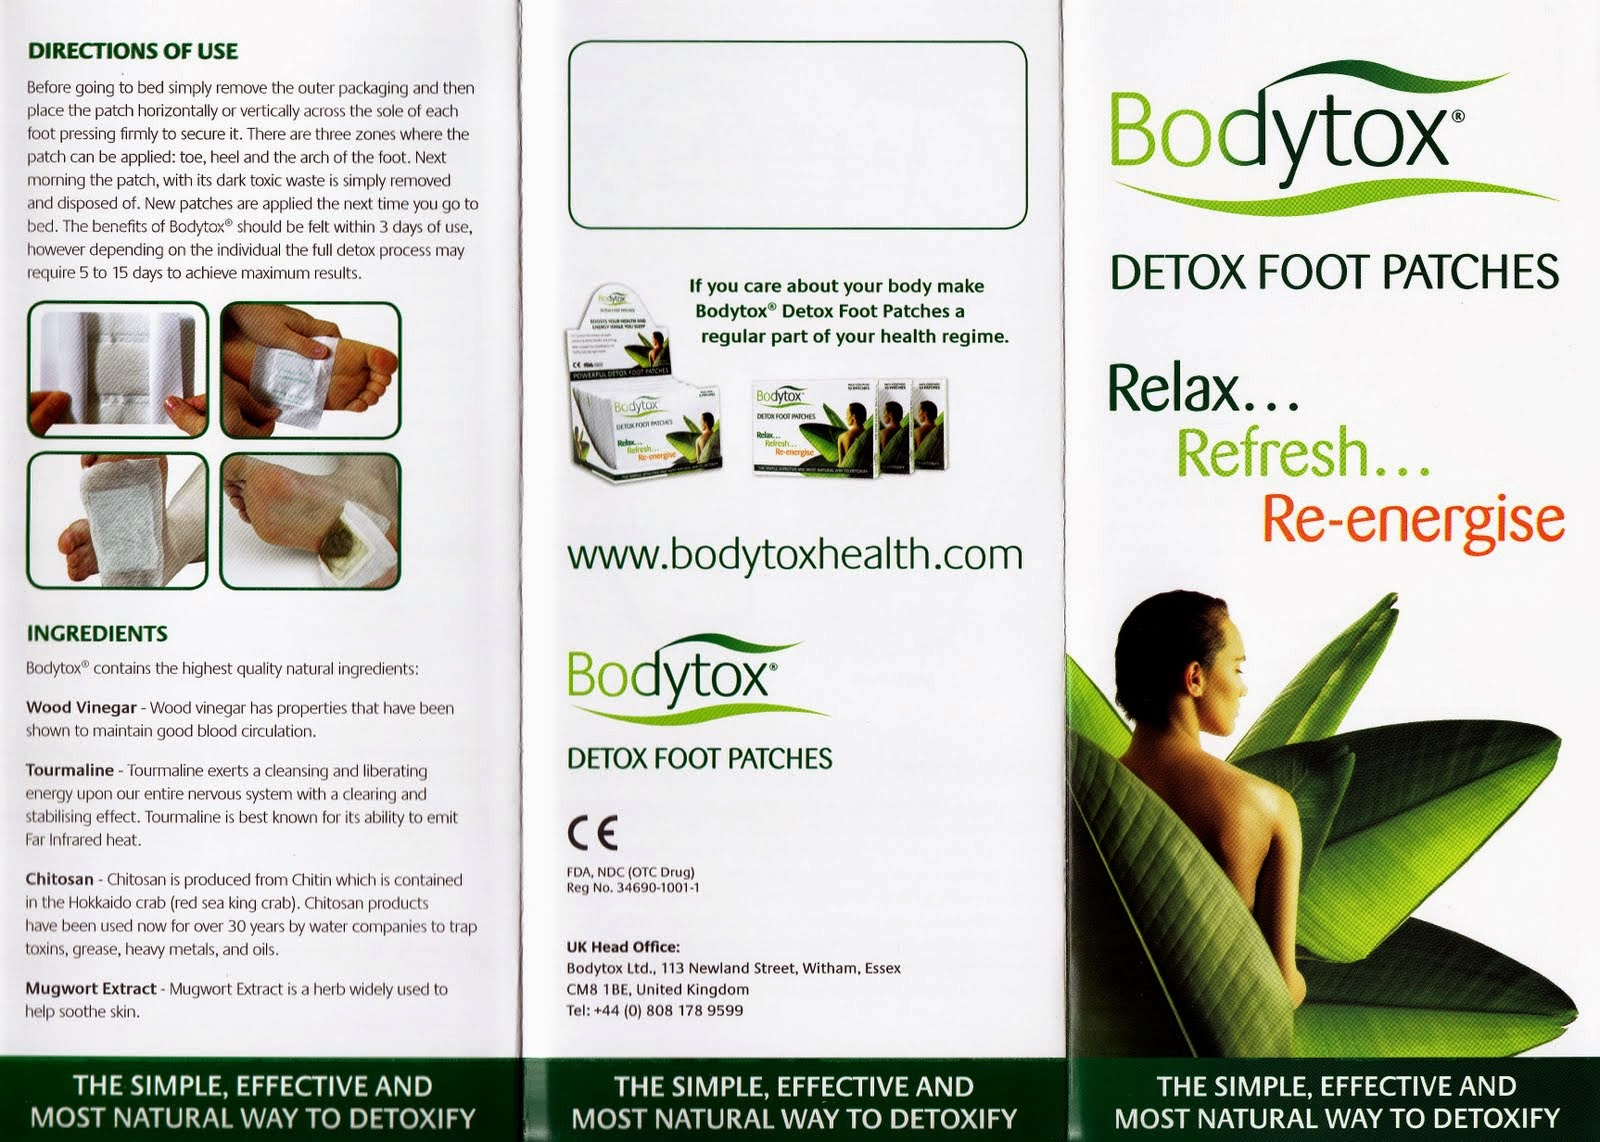 Attention Smokers - Detoxify With Ionic Foot Patches   Accretive Health